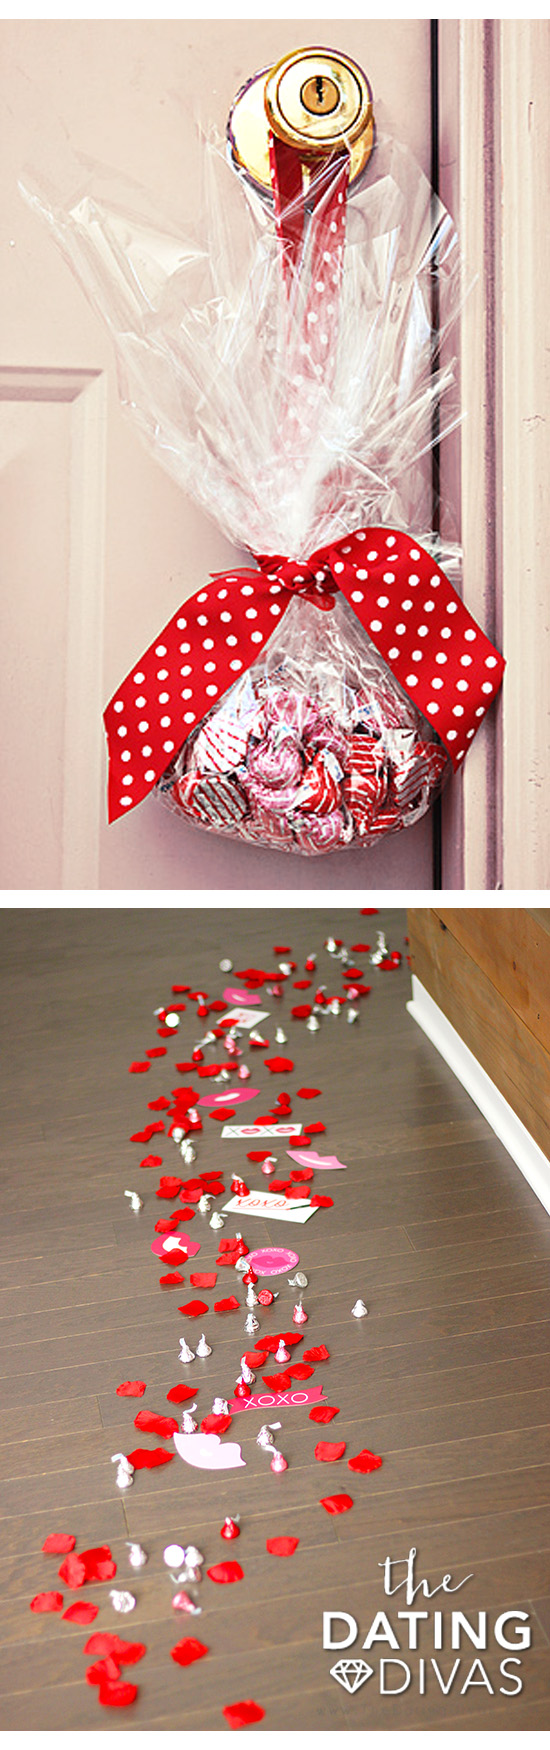 Romantic Valentine's Idea